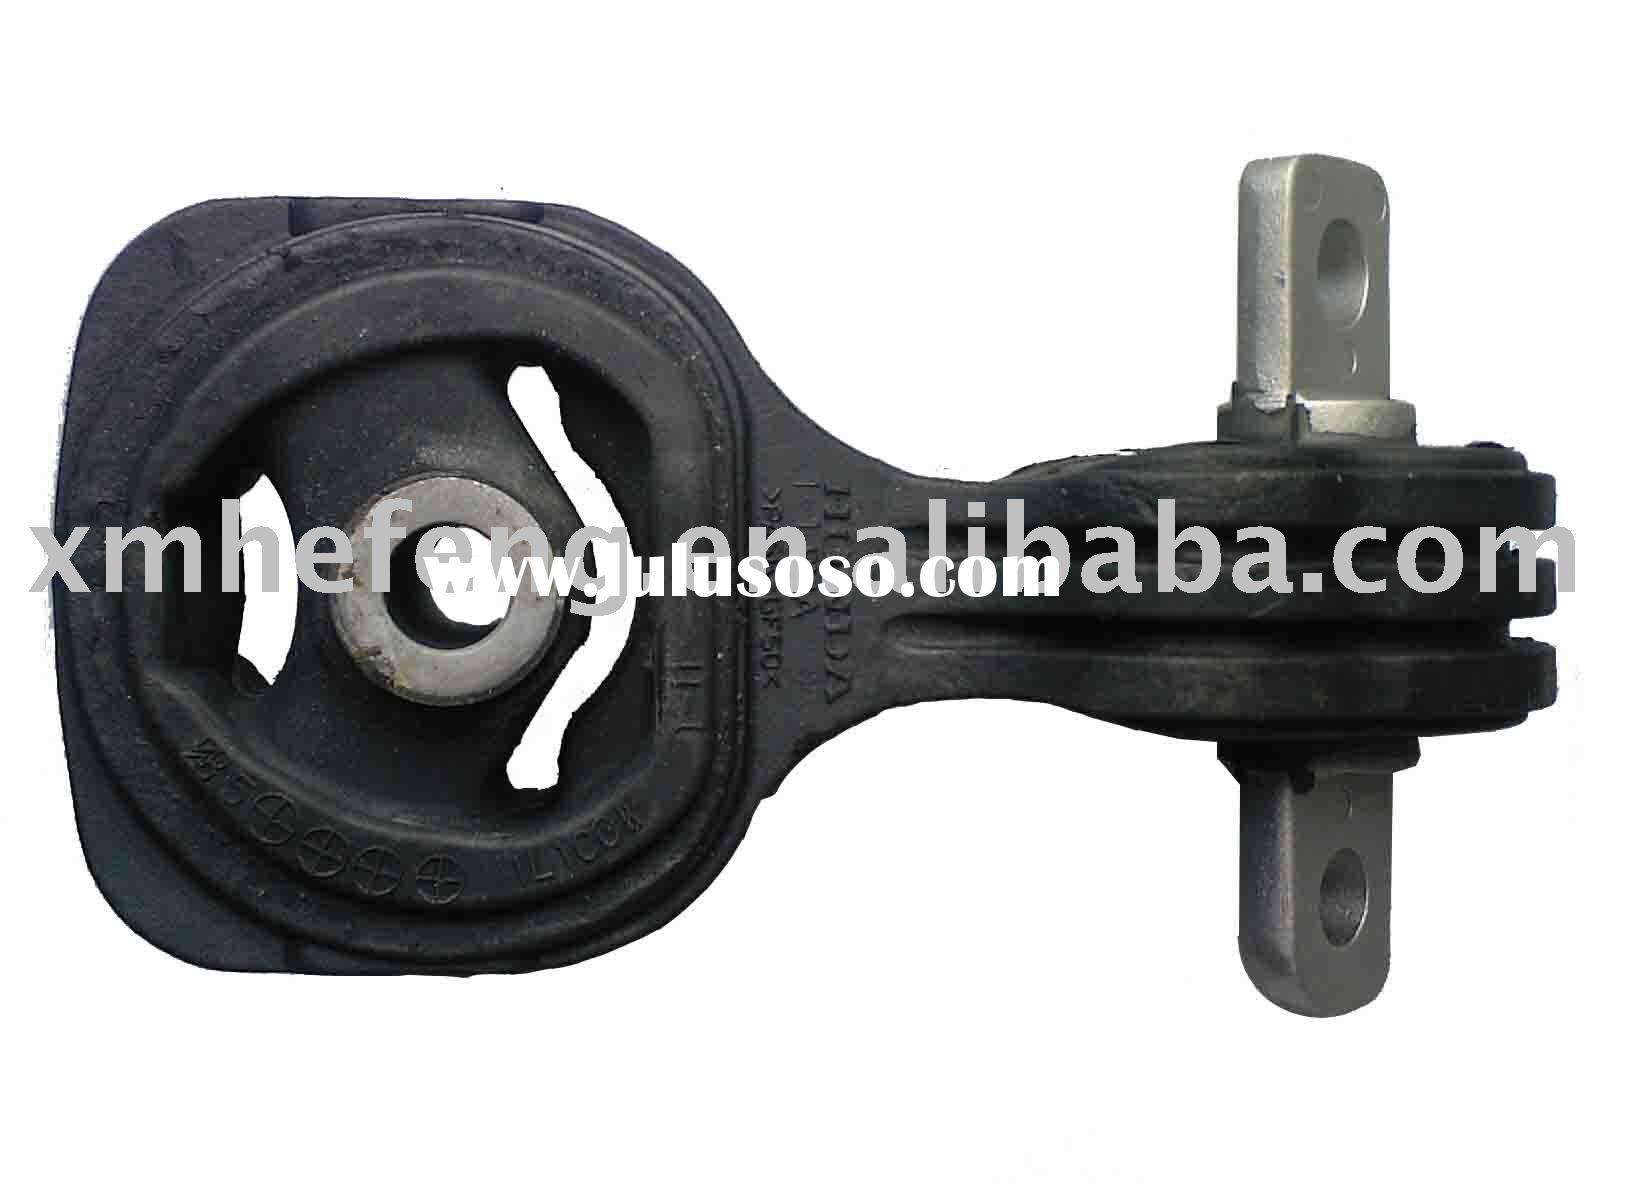 auto parts,engine mounting(50890-SNA-A81)engine support ,center bearing, shock absorbers, bushings,